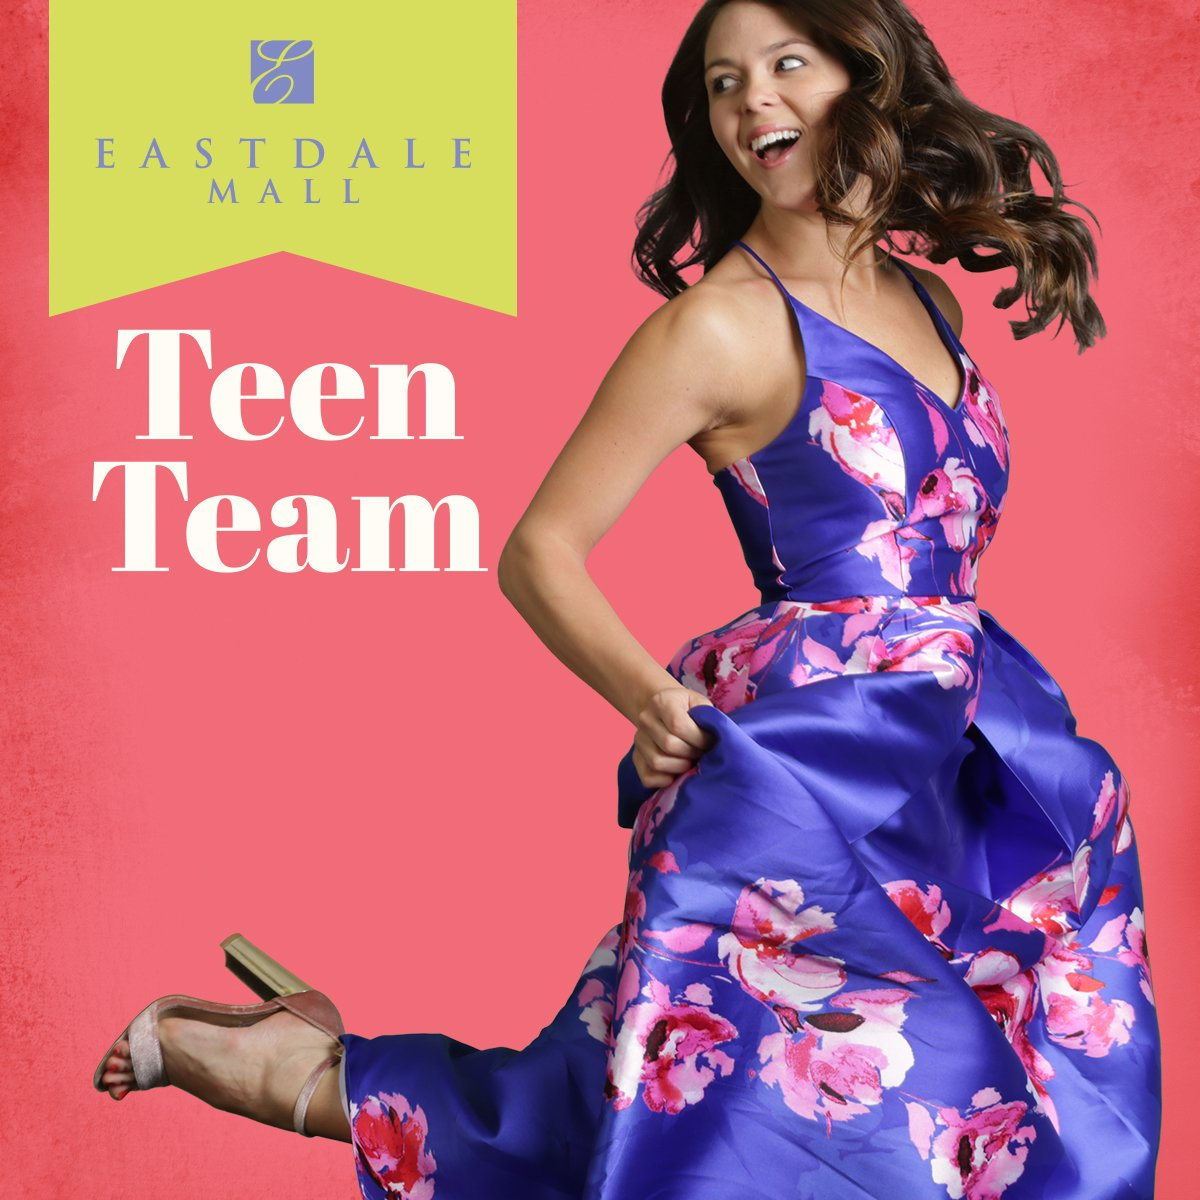 Eastdale mall teen team montgomery al was